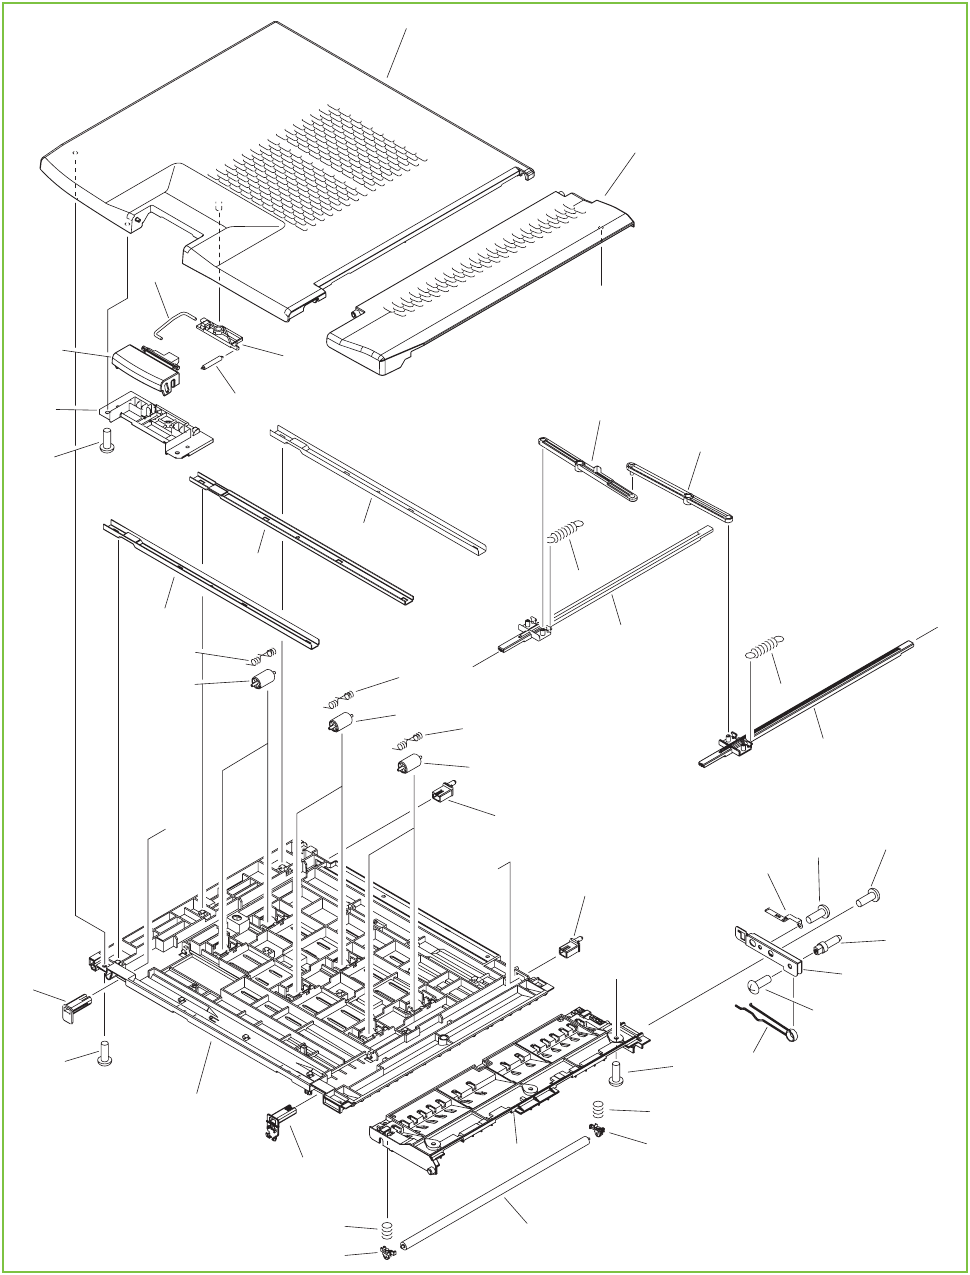 Figure 9-31 Intermediate-feed upper-guide assembly